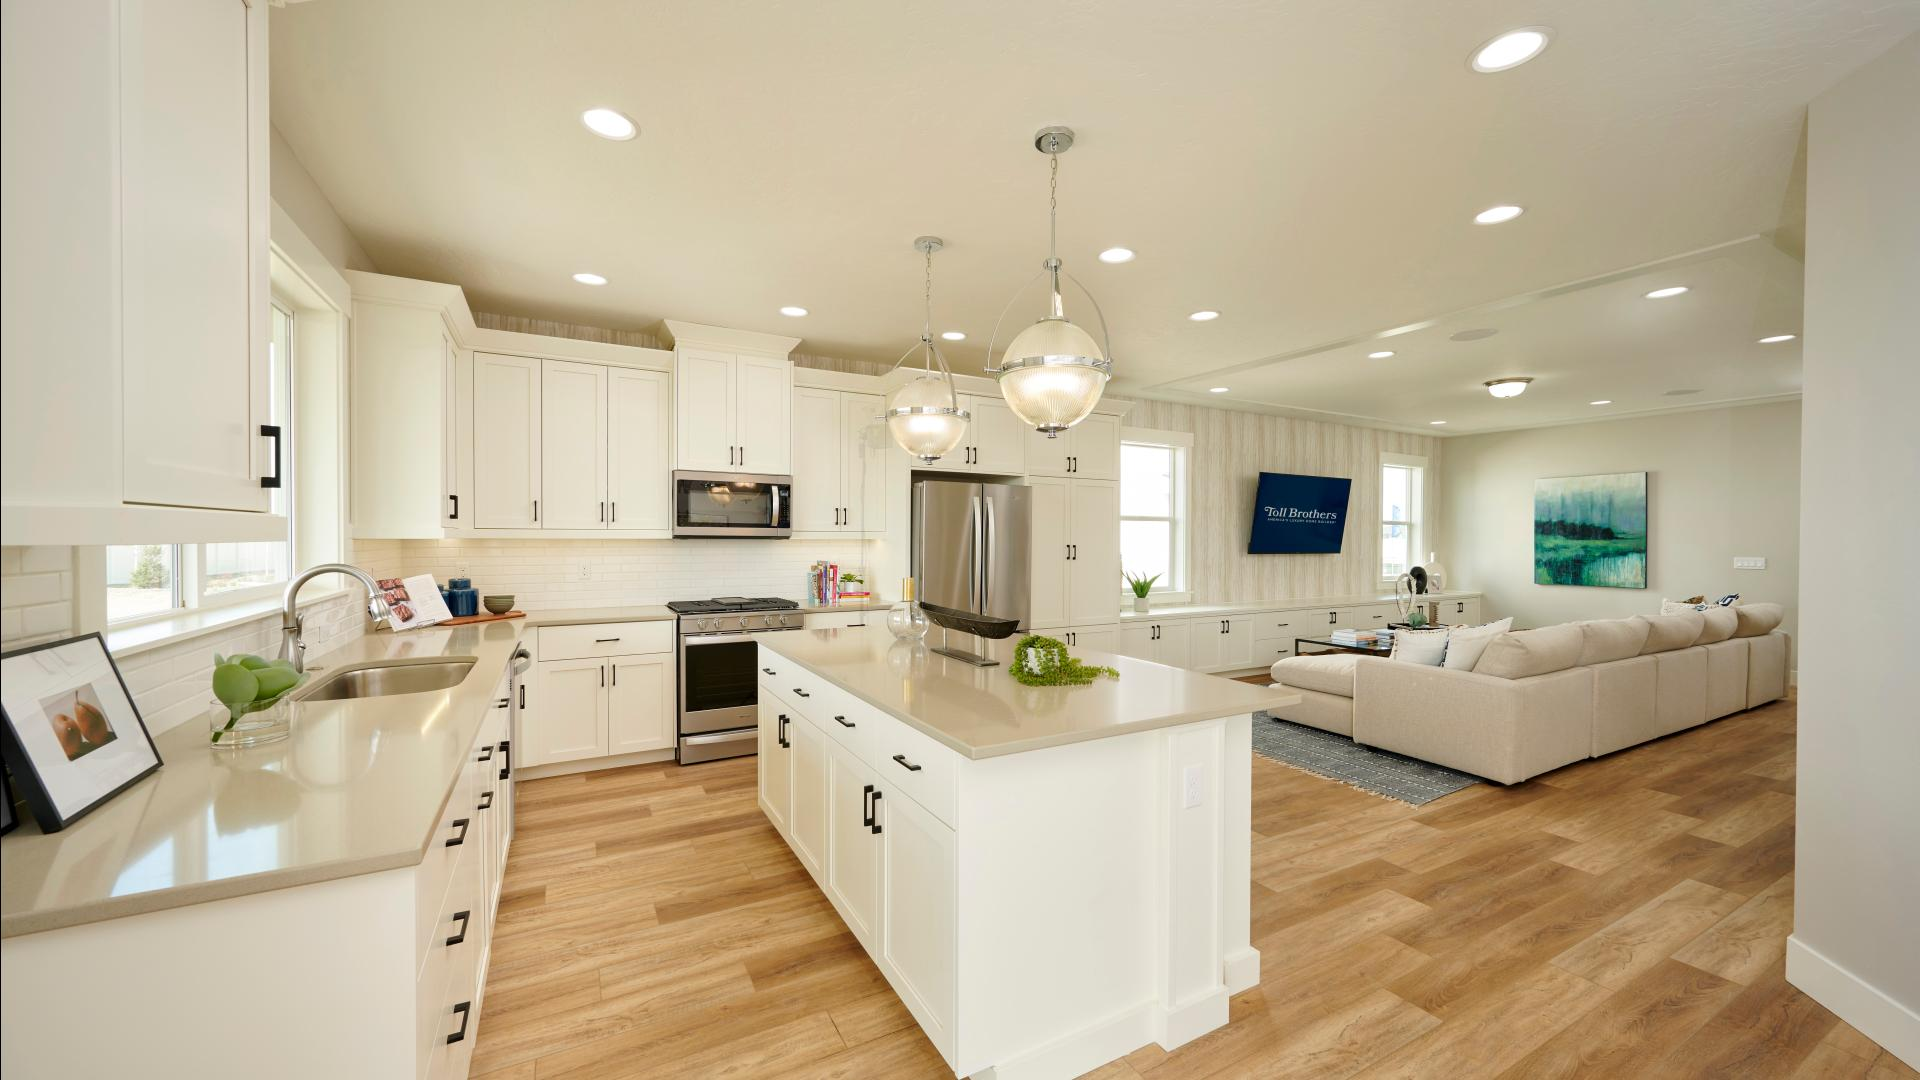 Convenient kitchens with ample counter and cabinet spaces